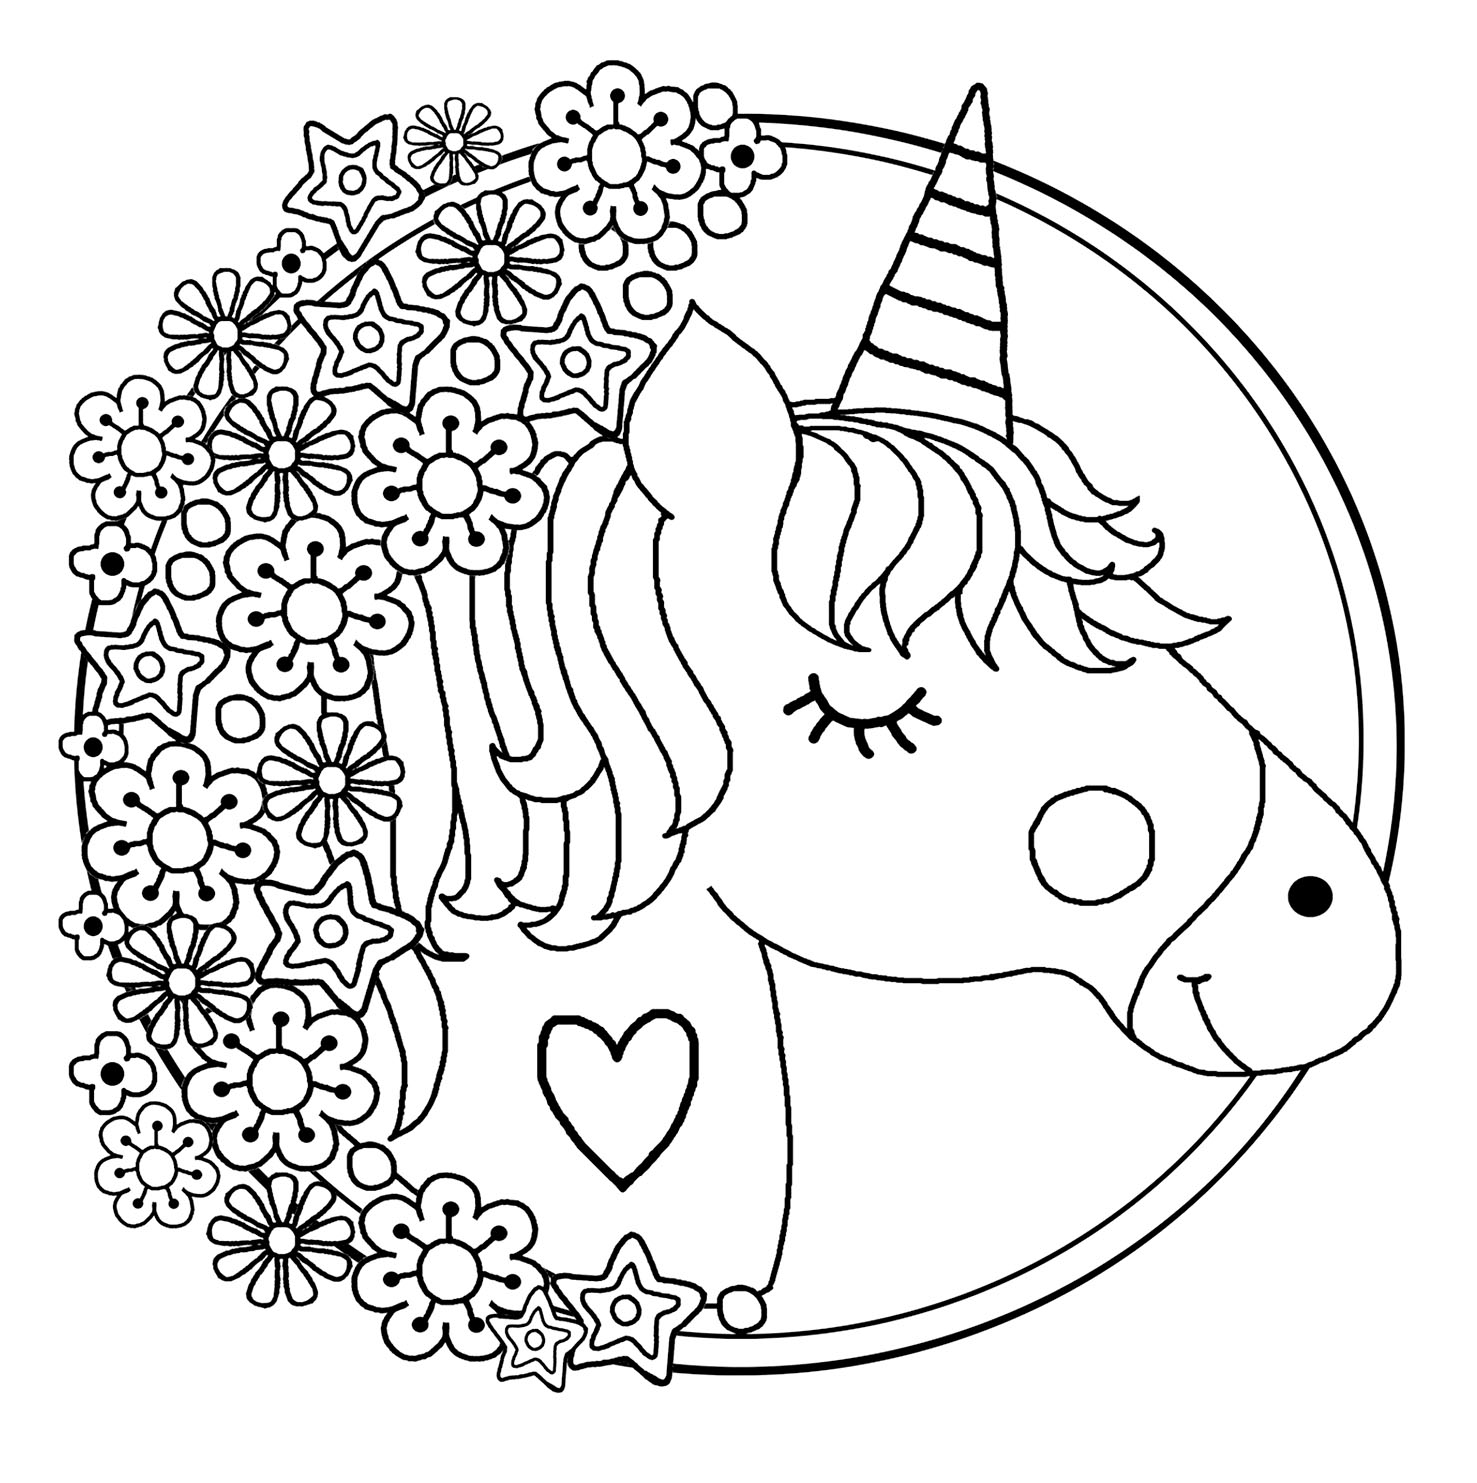 coloring worksheet unicorn free printable unicorn coloring pages winged 101 worksheets worksheet unicorn coloring